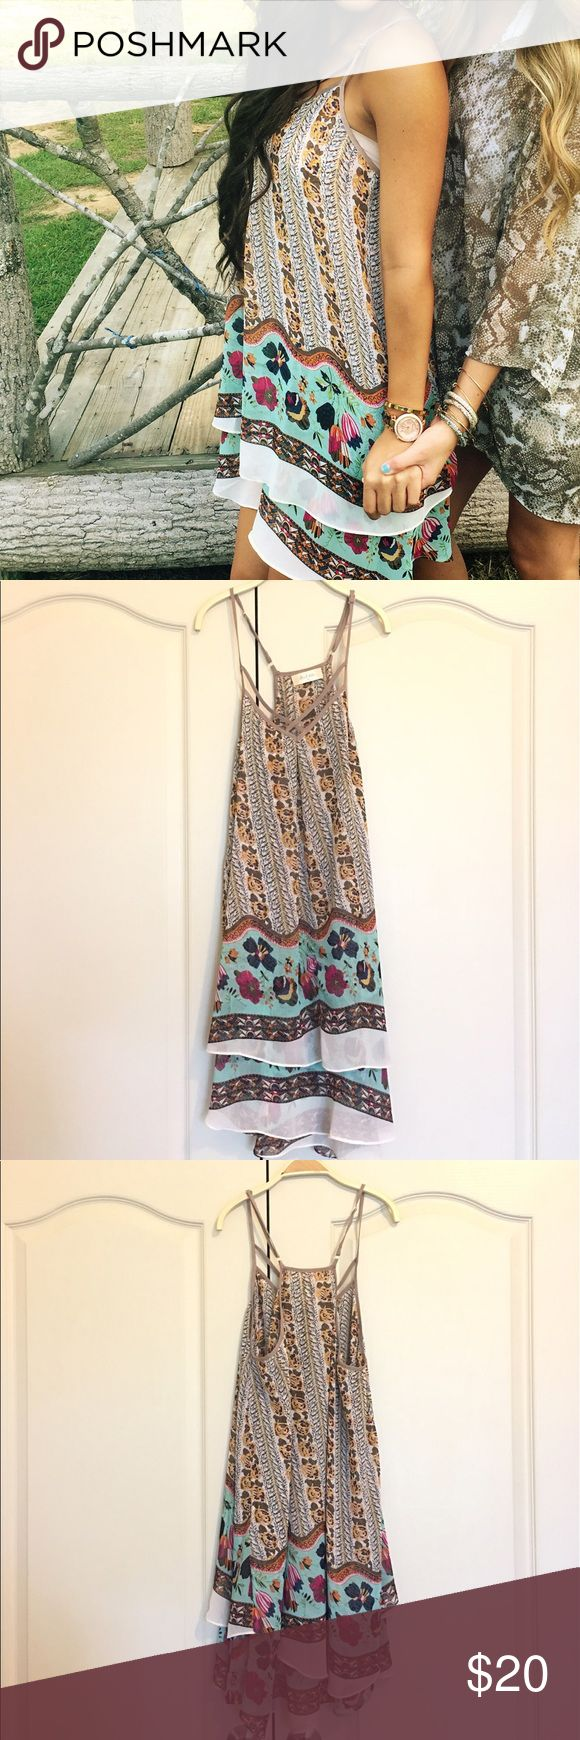 Altar'd State Patterned Dress! Floral pattern, dressy material, flowy, in great condition, worn twice Altar'd State Dresses Midi